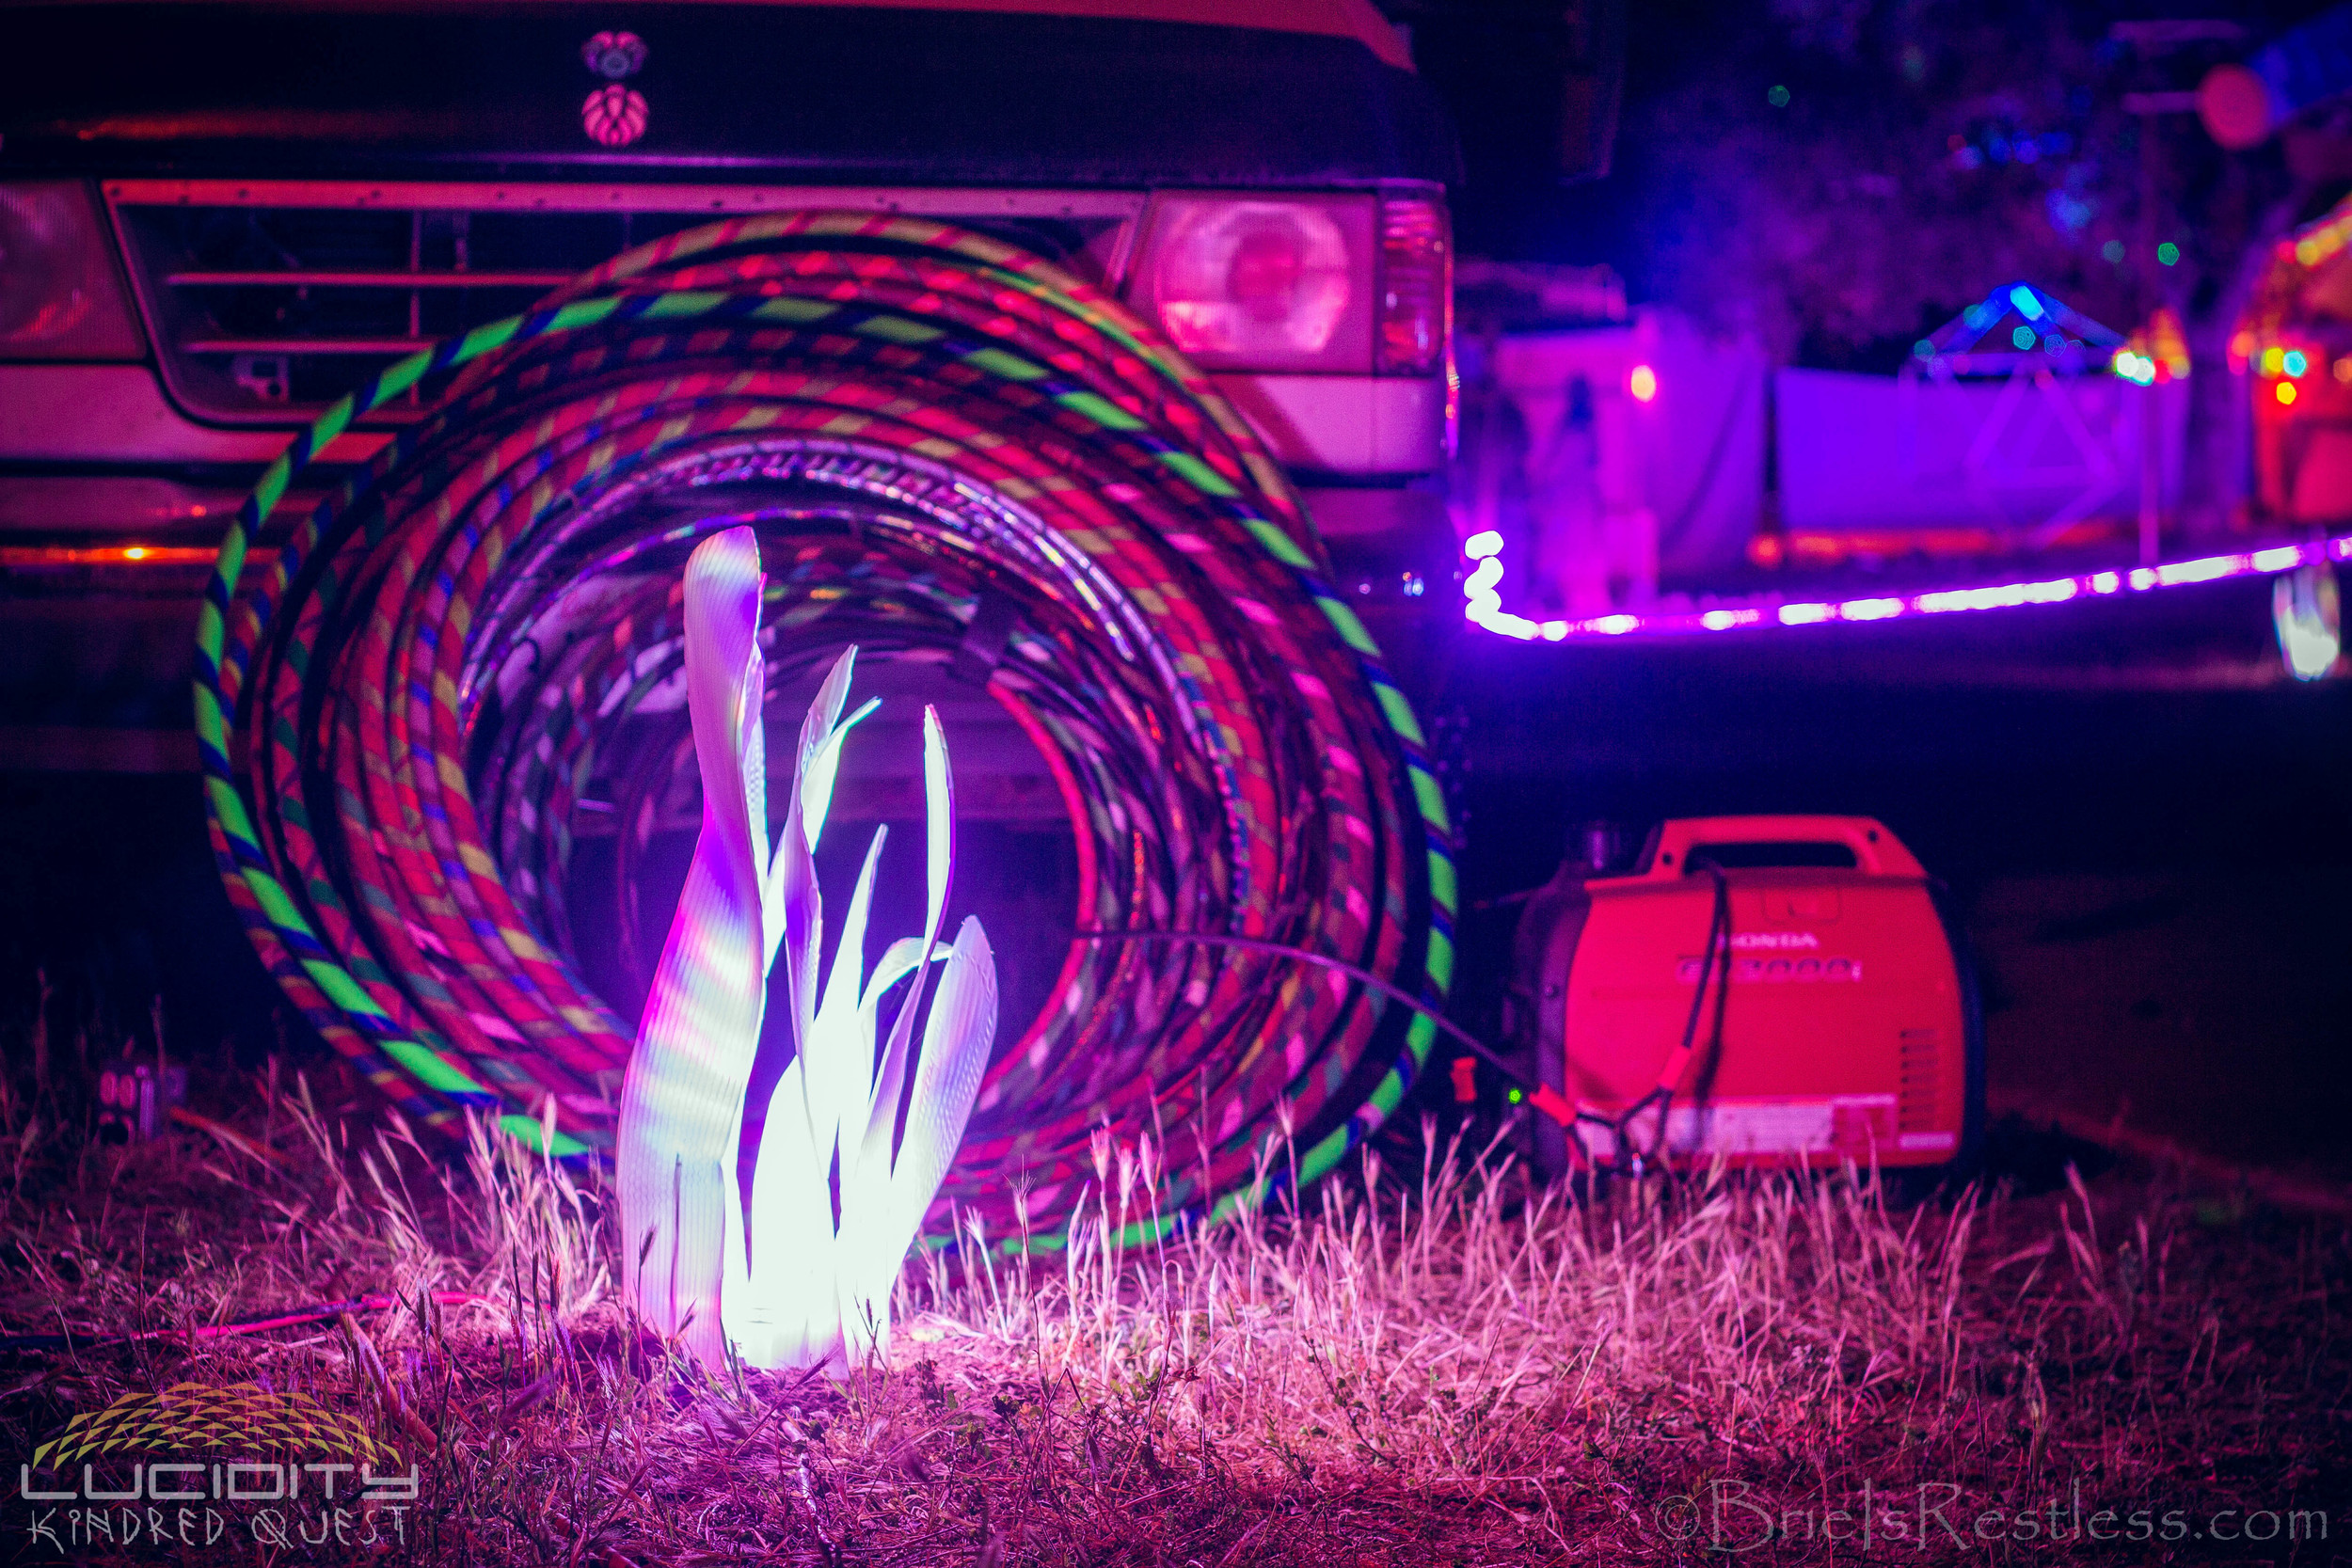 Hoola Hoops - Van - Trail of Light - Luciditiy - Kindred Quest - Build - April 2015 (1 of 1) (1 of 1).jpg